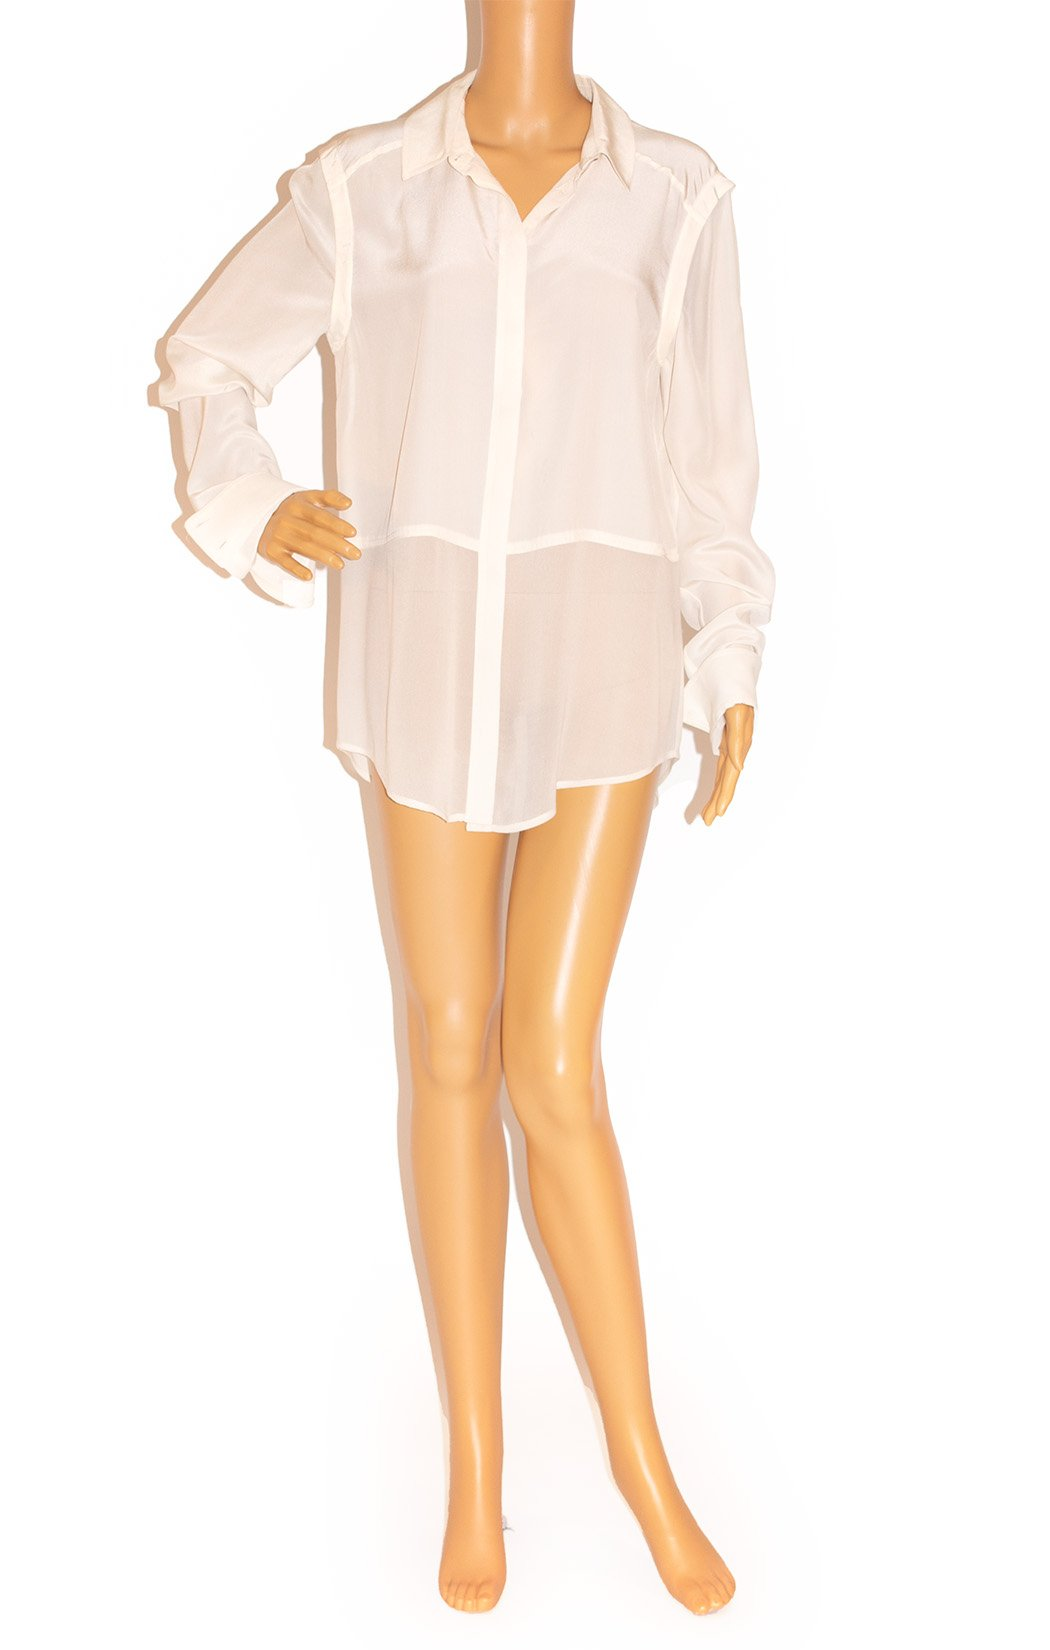 Front view of T by ALEXANDER WANG Blouse Size: Medium